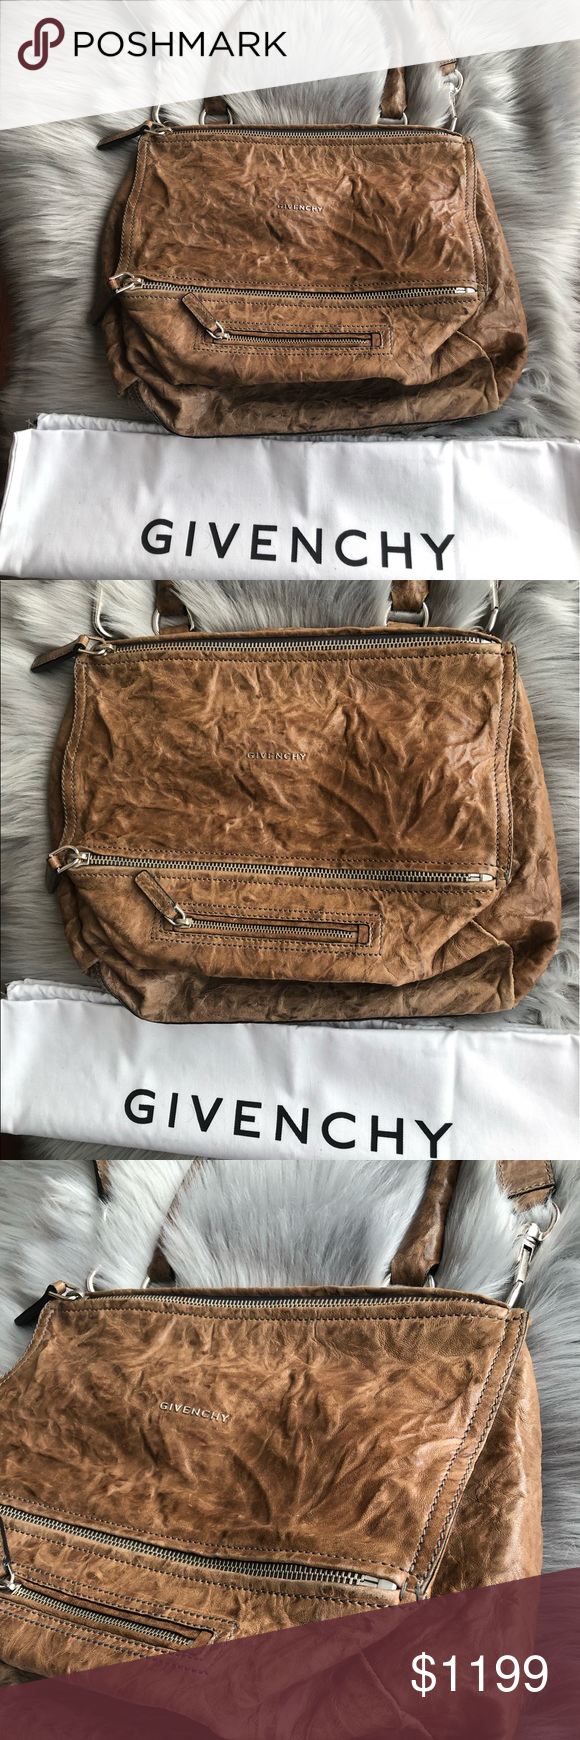 🔥FINAL SALE🔥Authentic Givenchy Medium Pandora ❤ ❤️Pre owned in very good 4b59b0bb8b